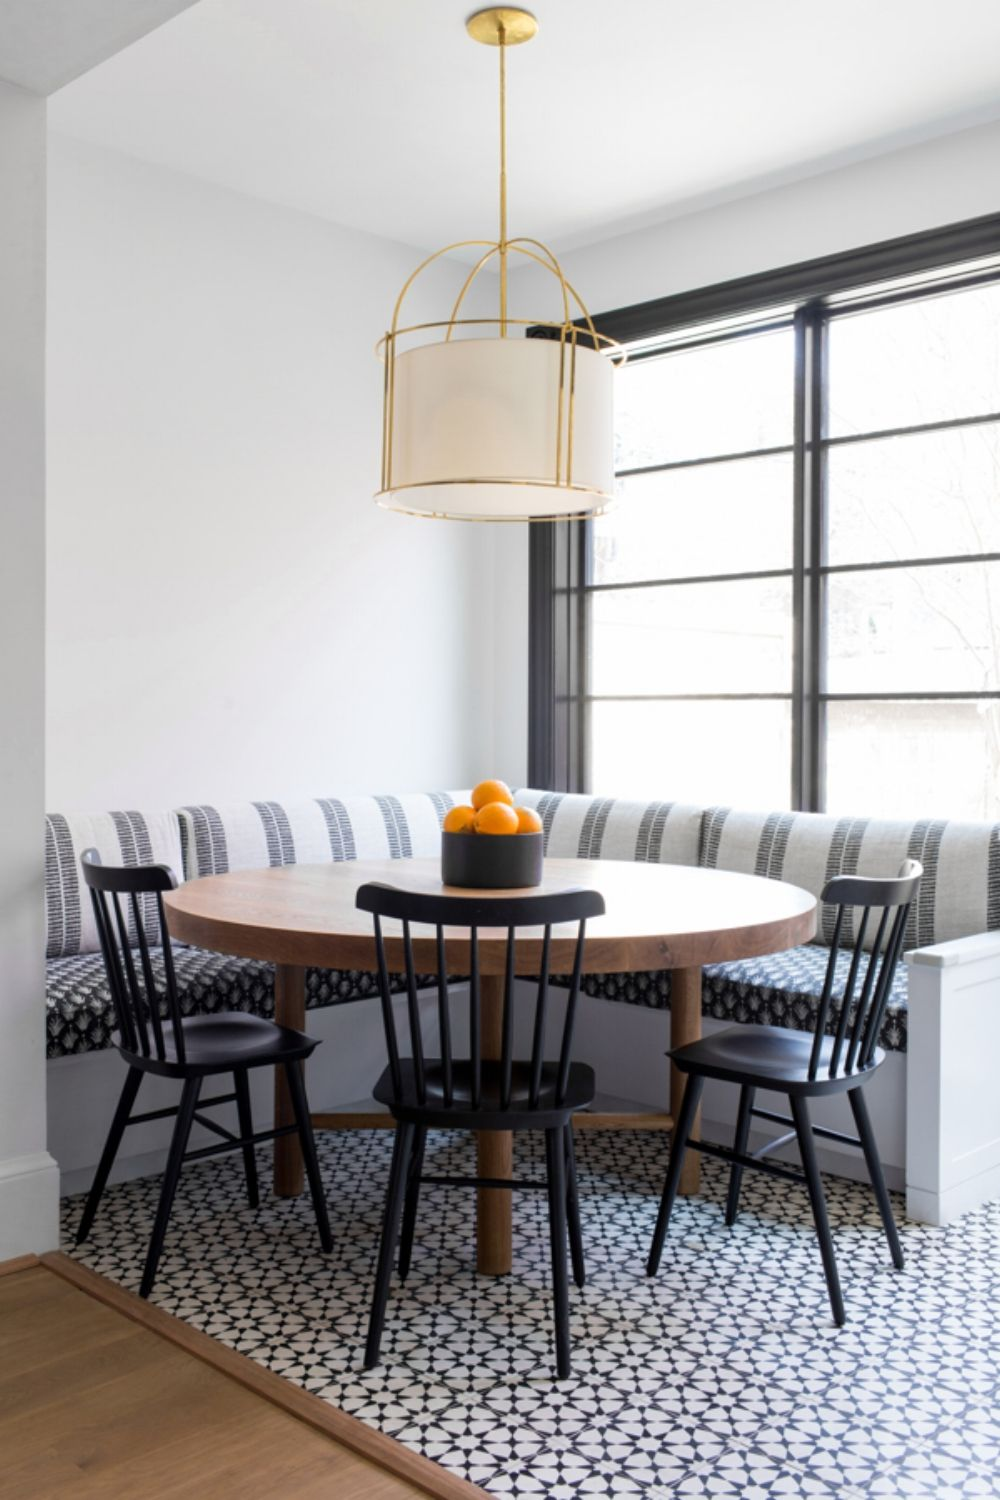 10 More Adorable Dining Nooks